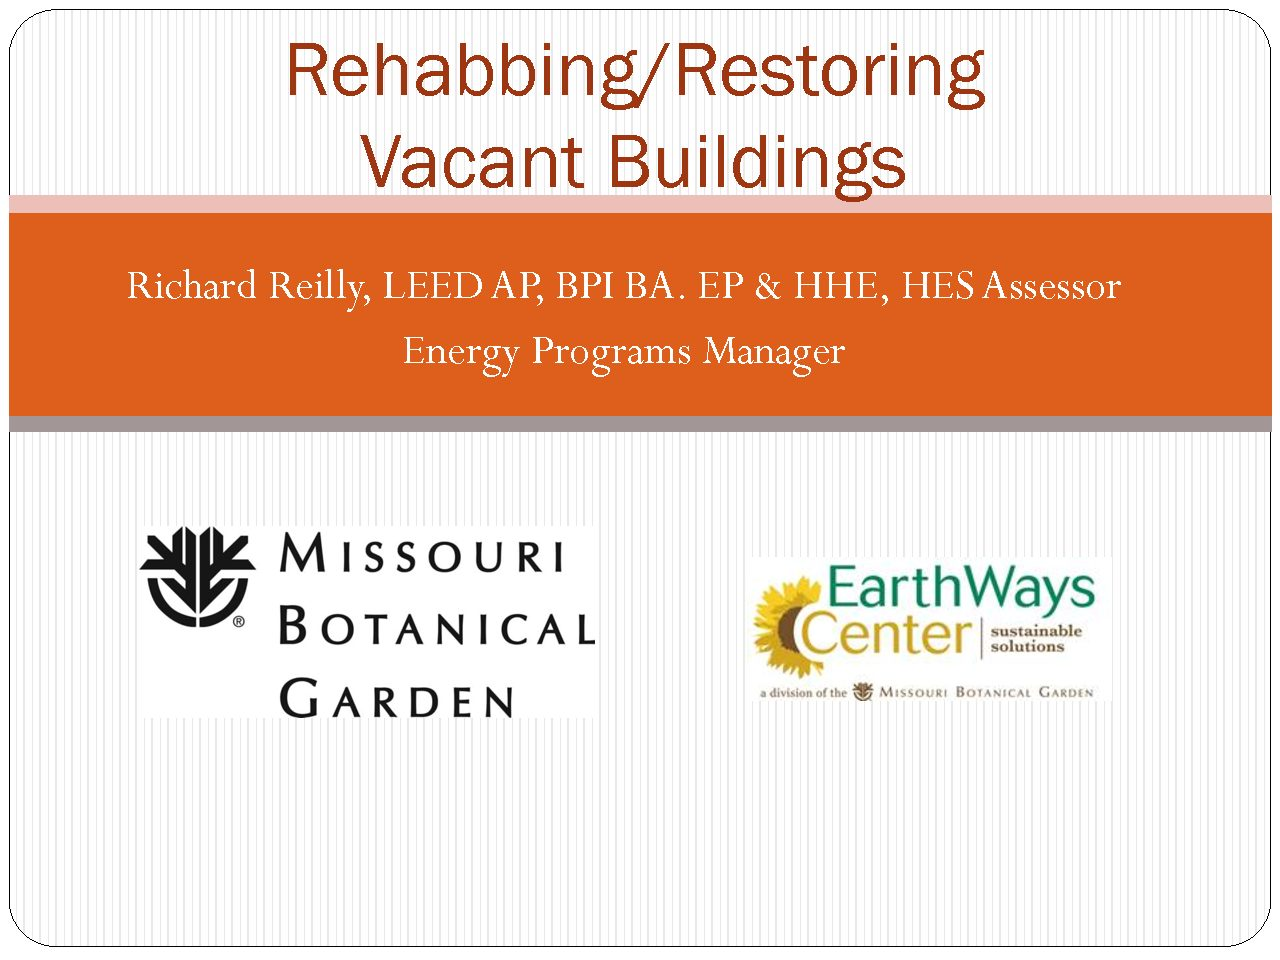 Rehabbing and Restoring Vacant Buildings